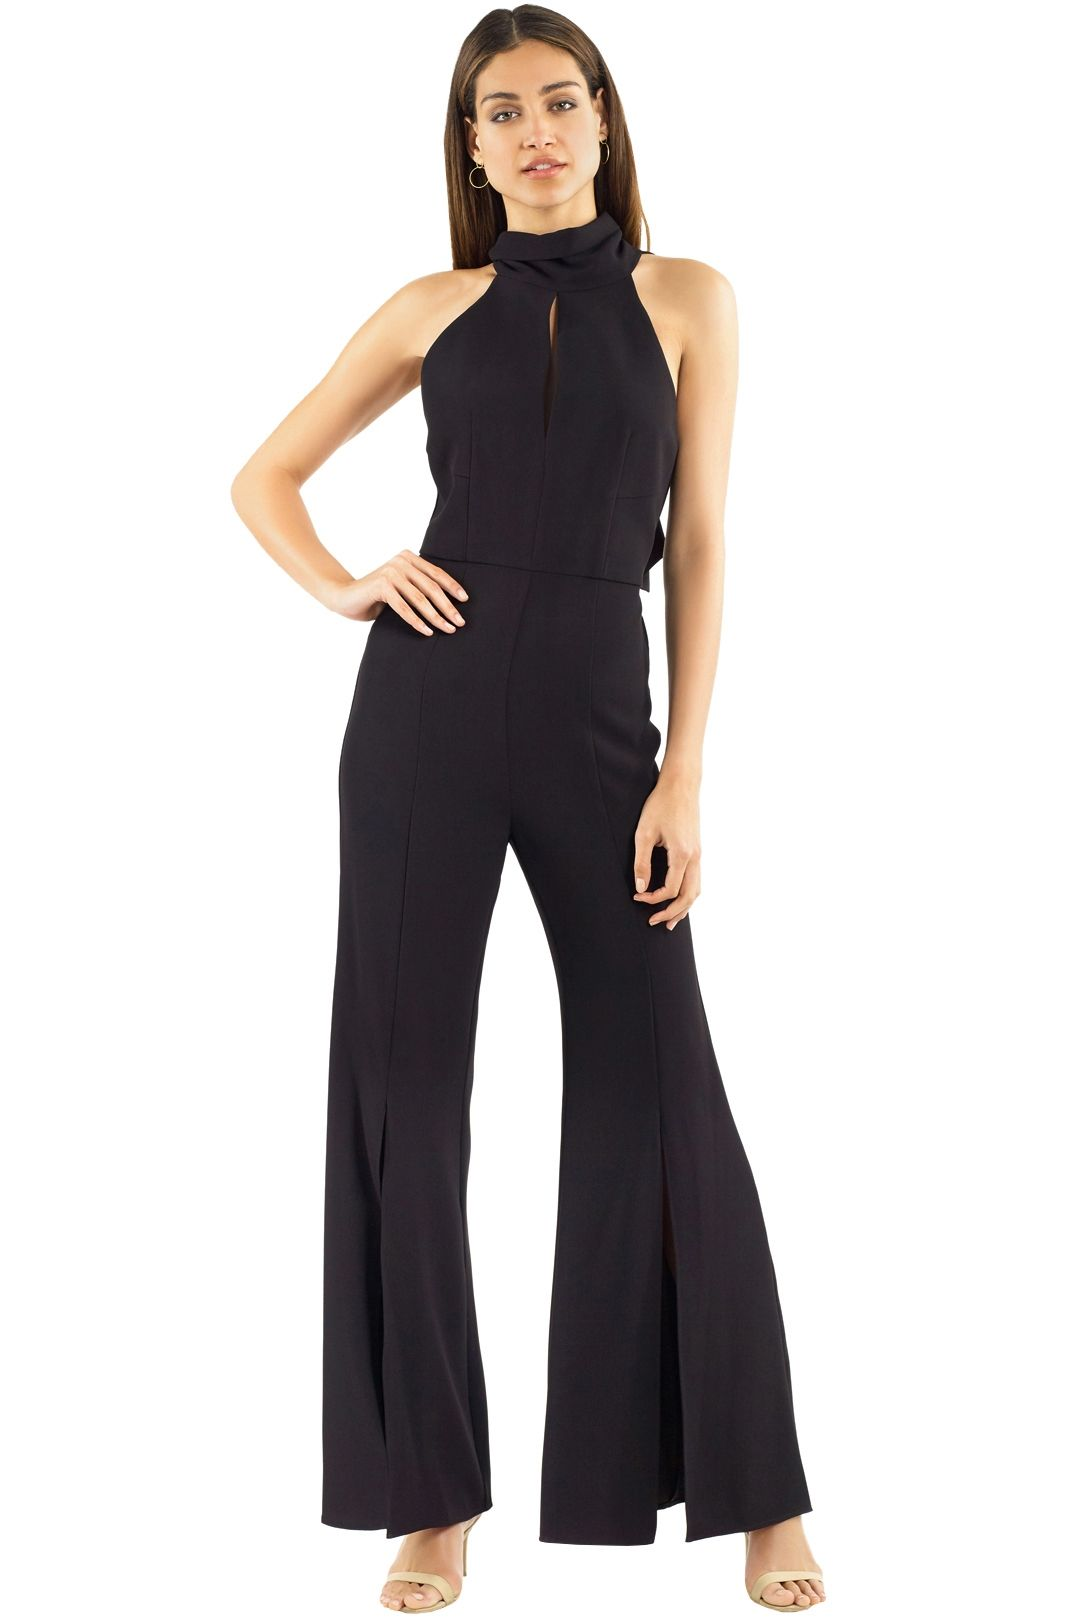 Nicholas the Label - Crepe Sleeveless Jumpsuit - Black - Front